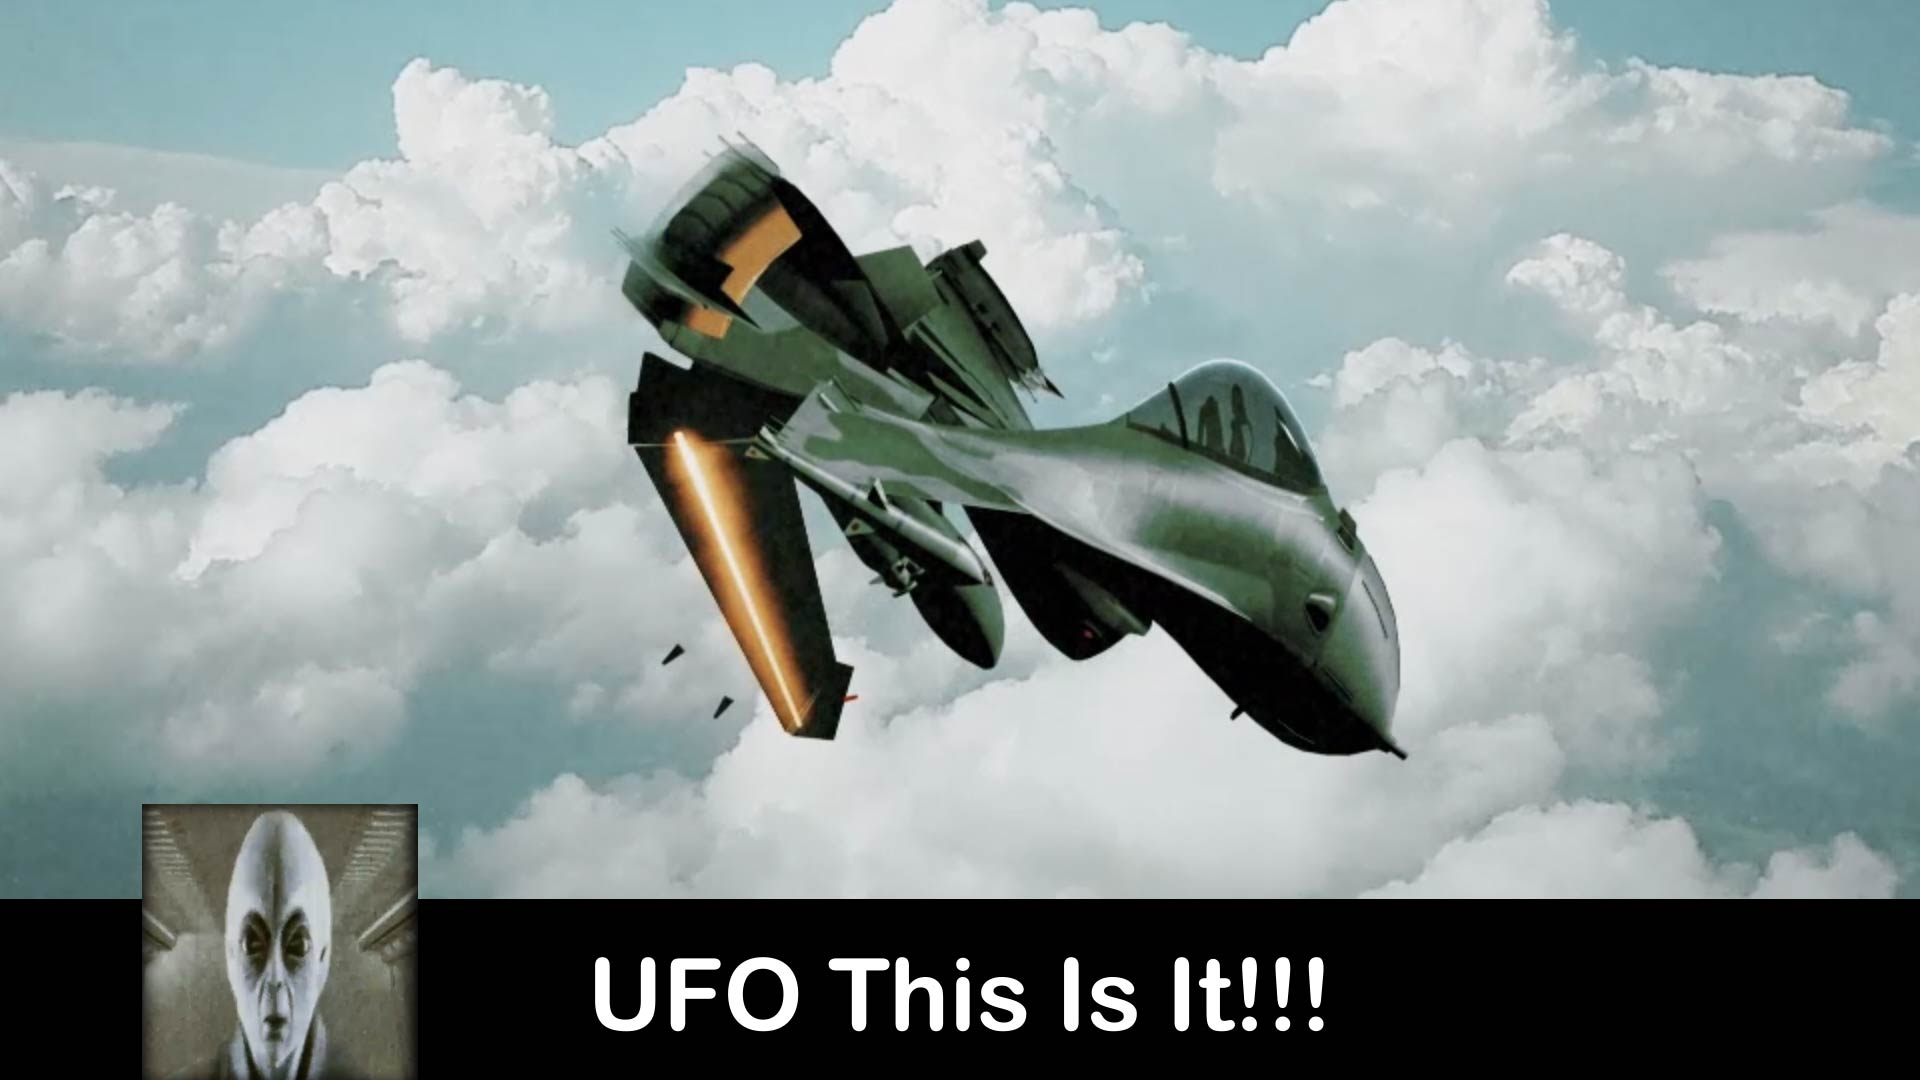 UFO Sightings This Is It July 22nd 2018